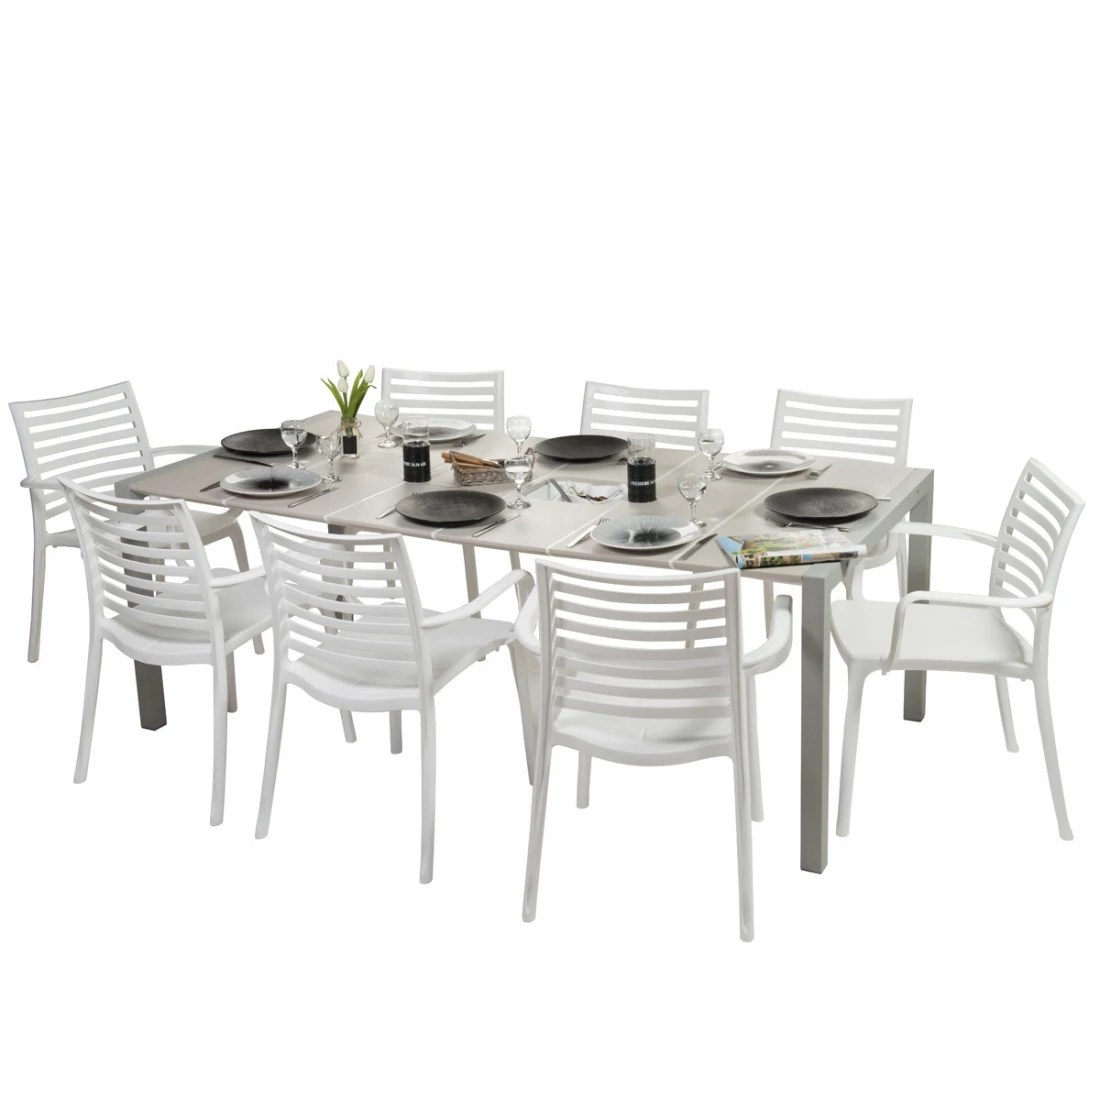 Salon De Jardin Sunday Salon De Jardin De Repas Sunday Lin Design Grosfillex